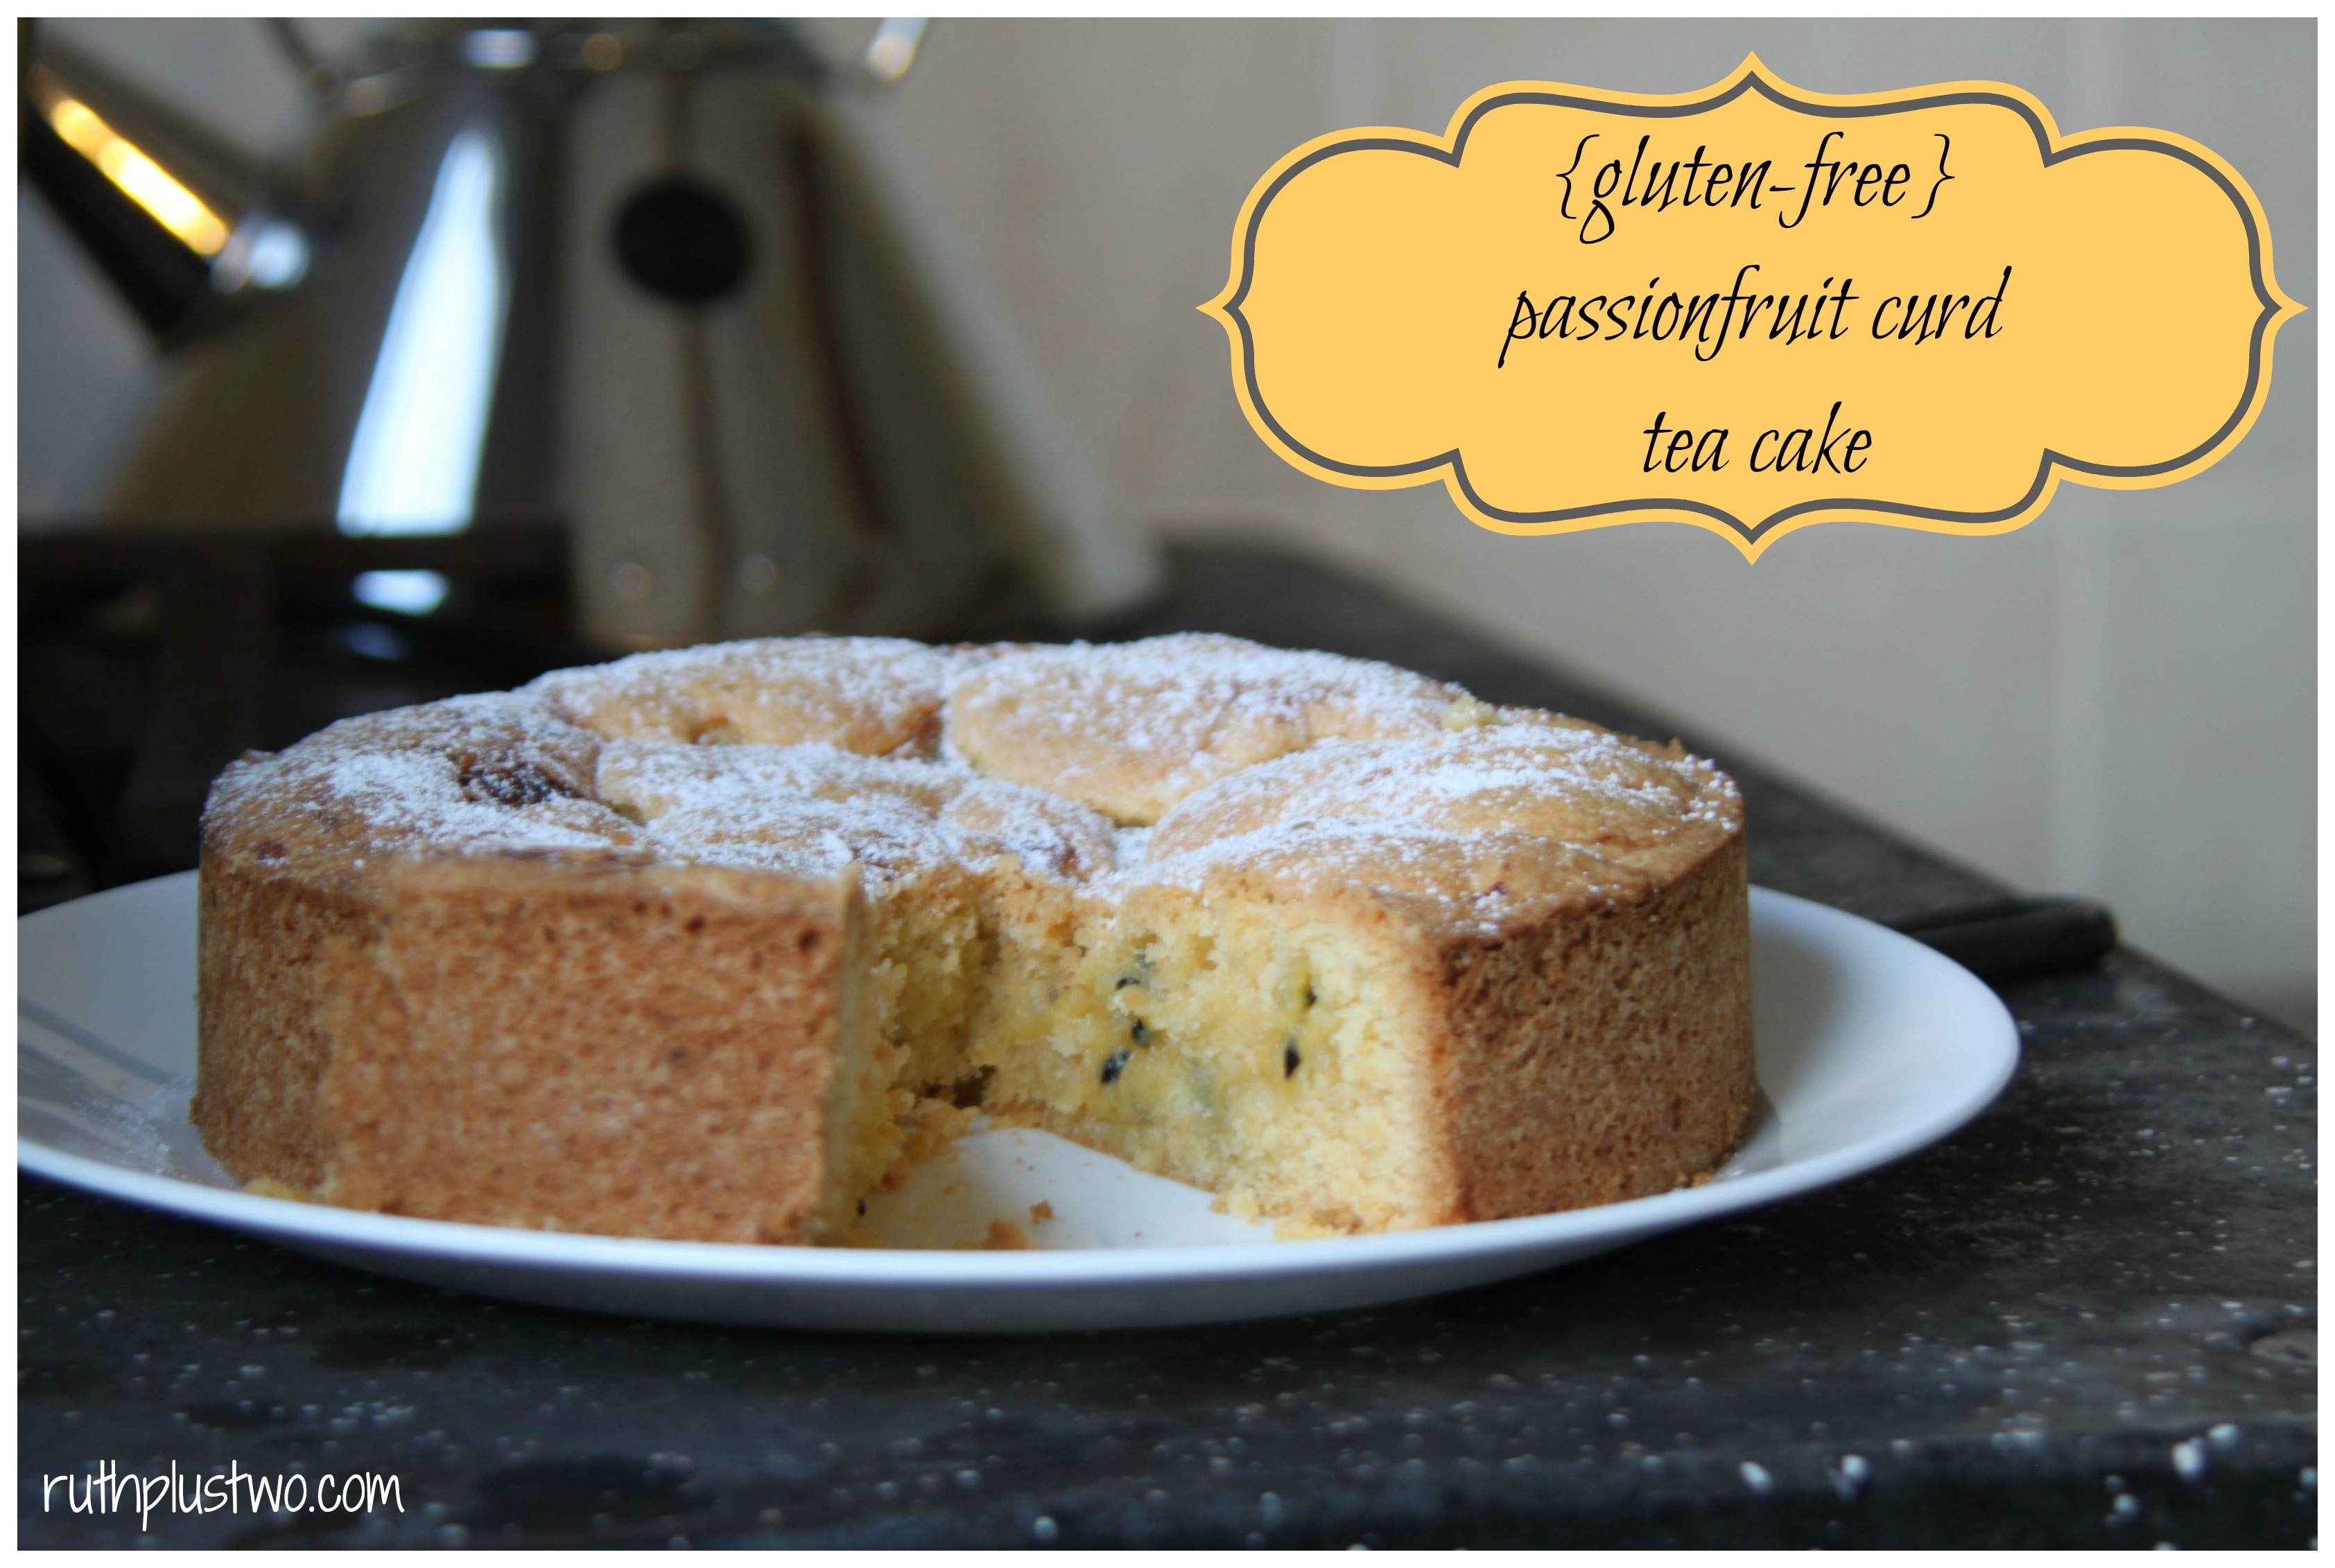 Gluten-free} passionfruit curd tea cake | ruth plus two